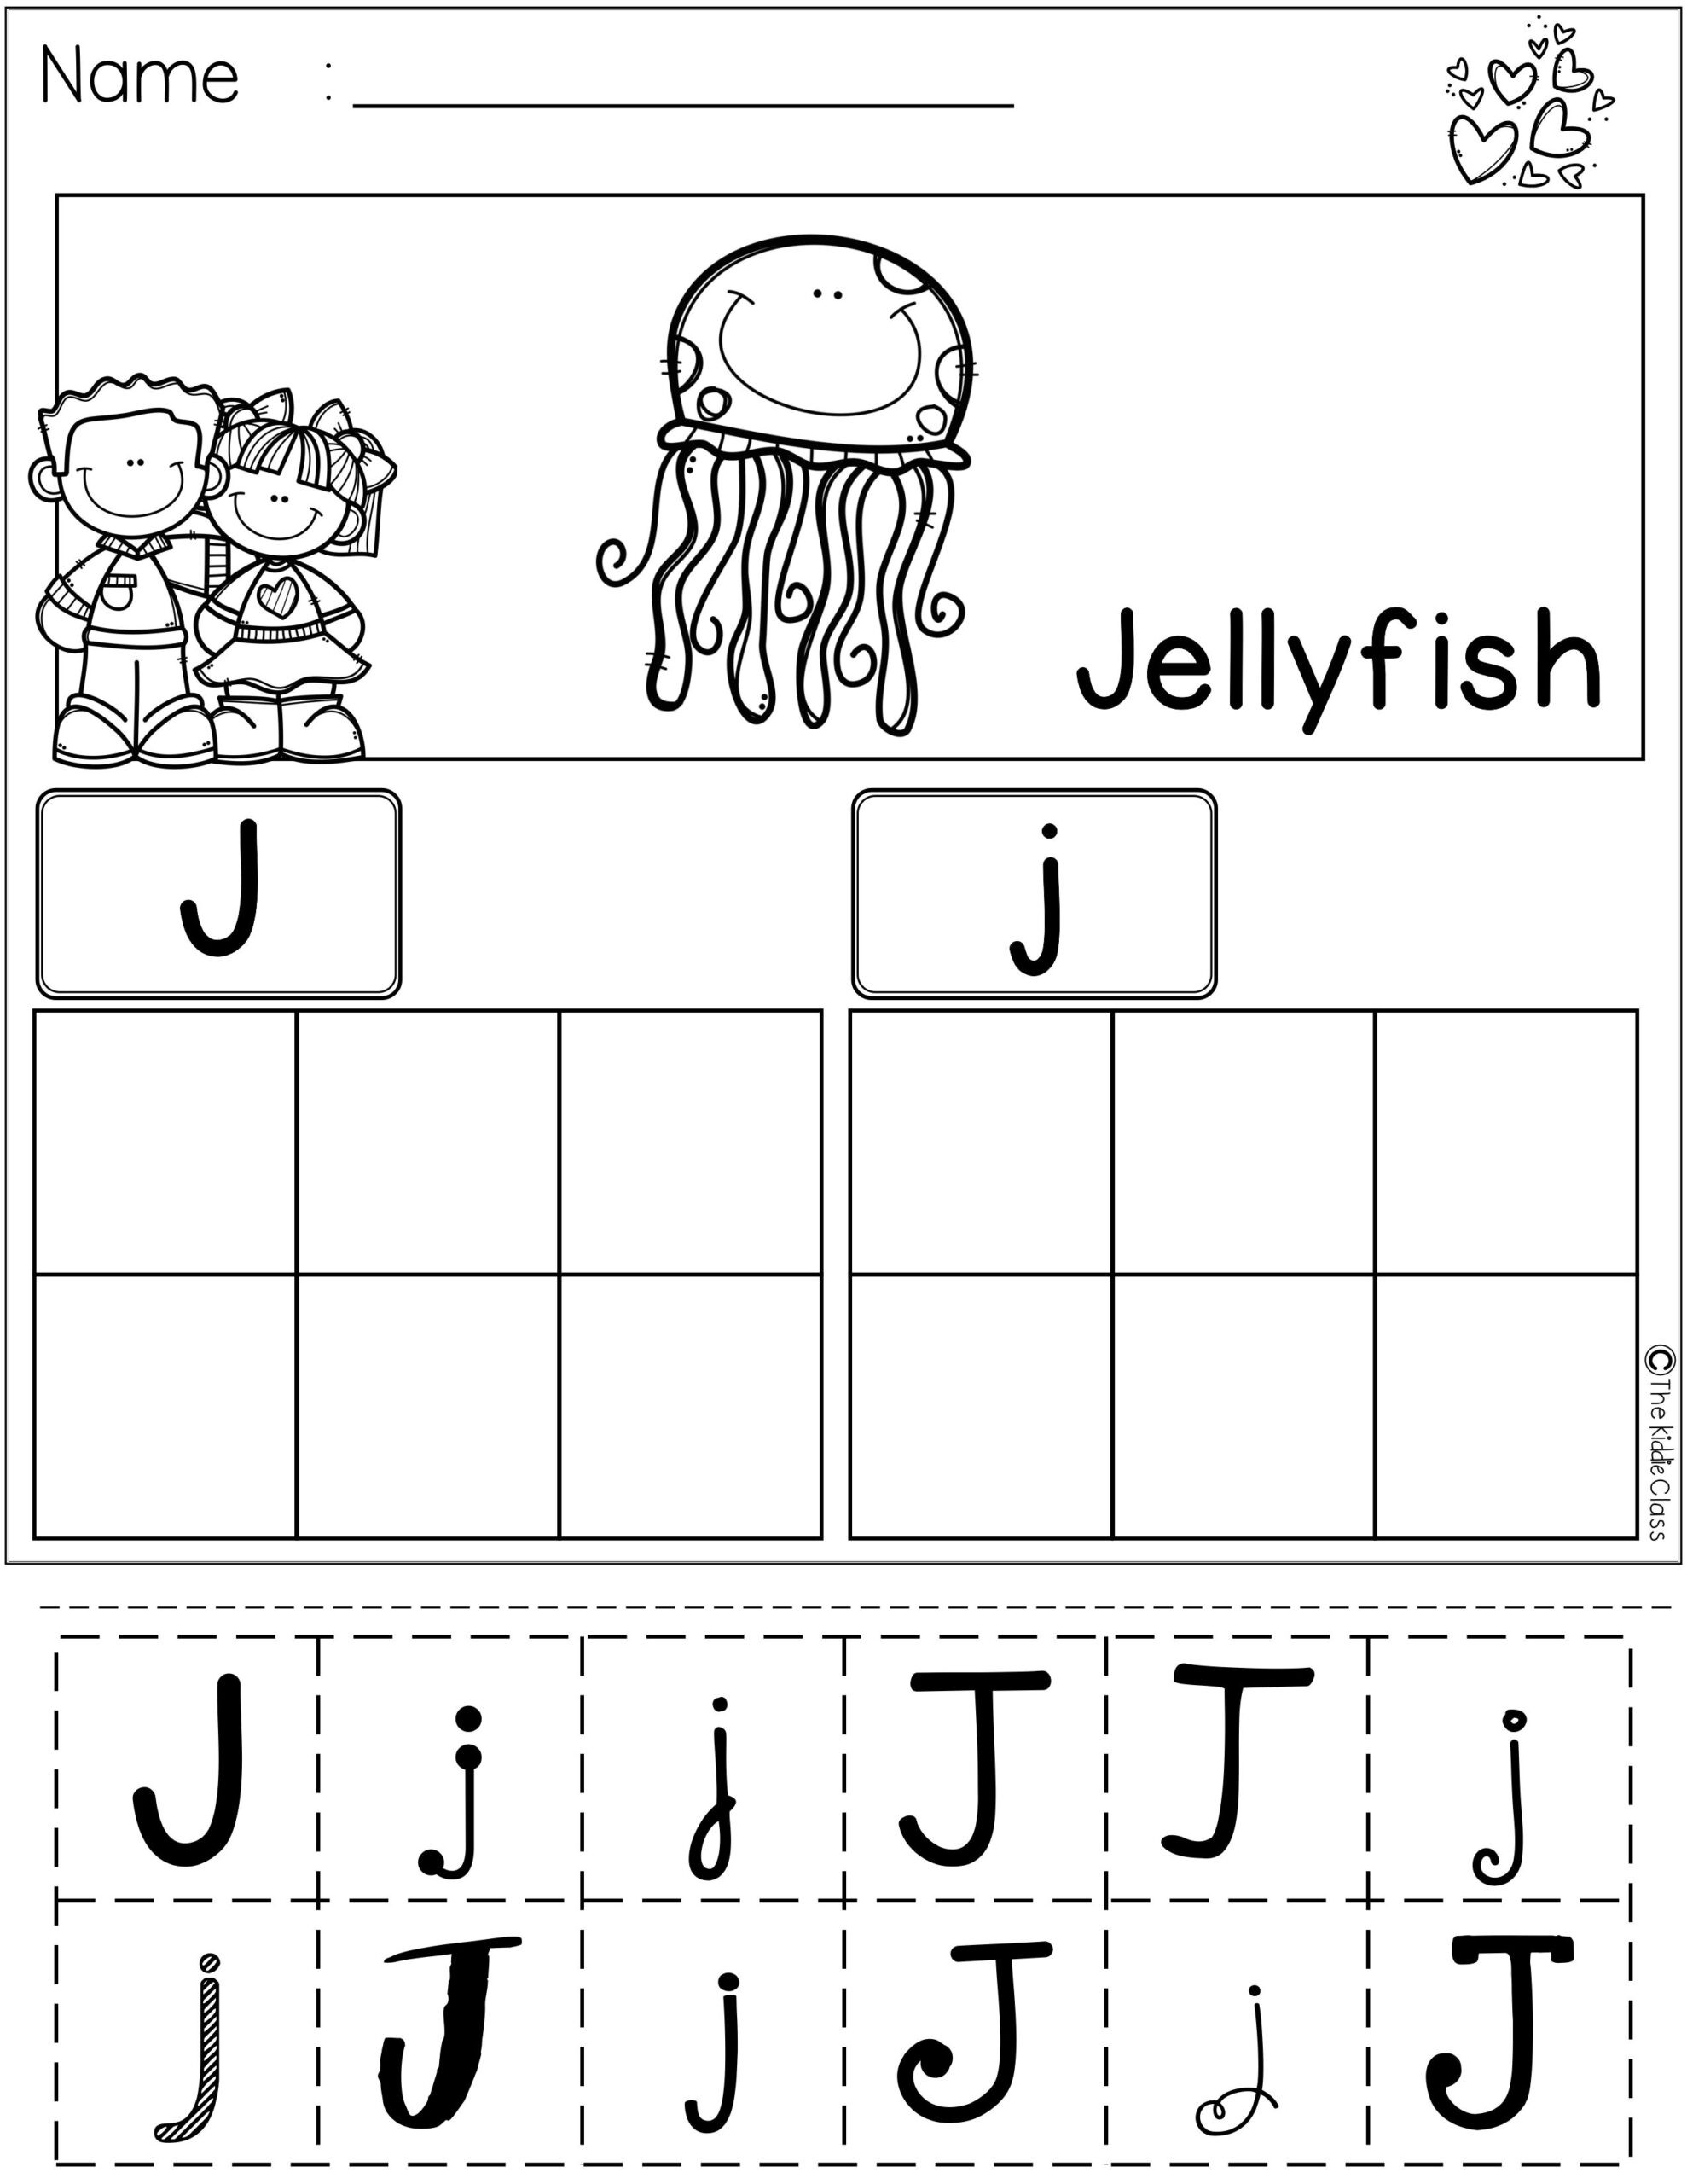 Alphabet Cut and Paste Worksheets Alphabet Cut and Paste Worksheets Best Preschool Spring